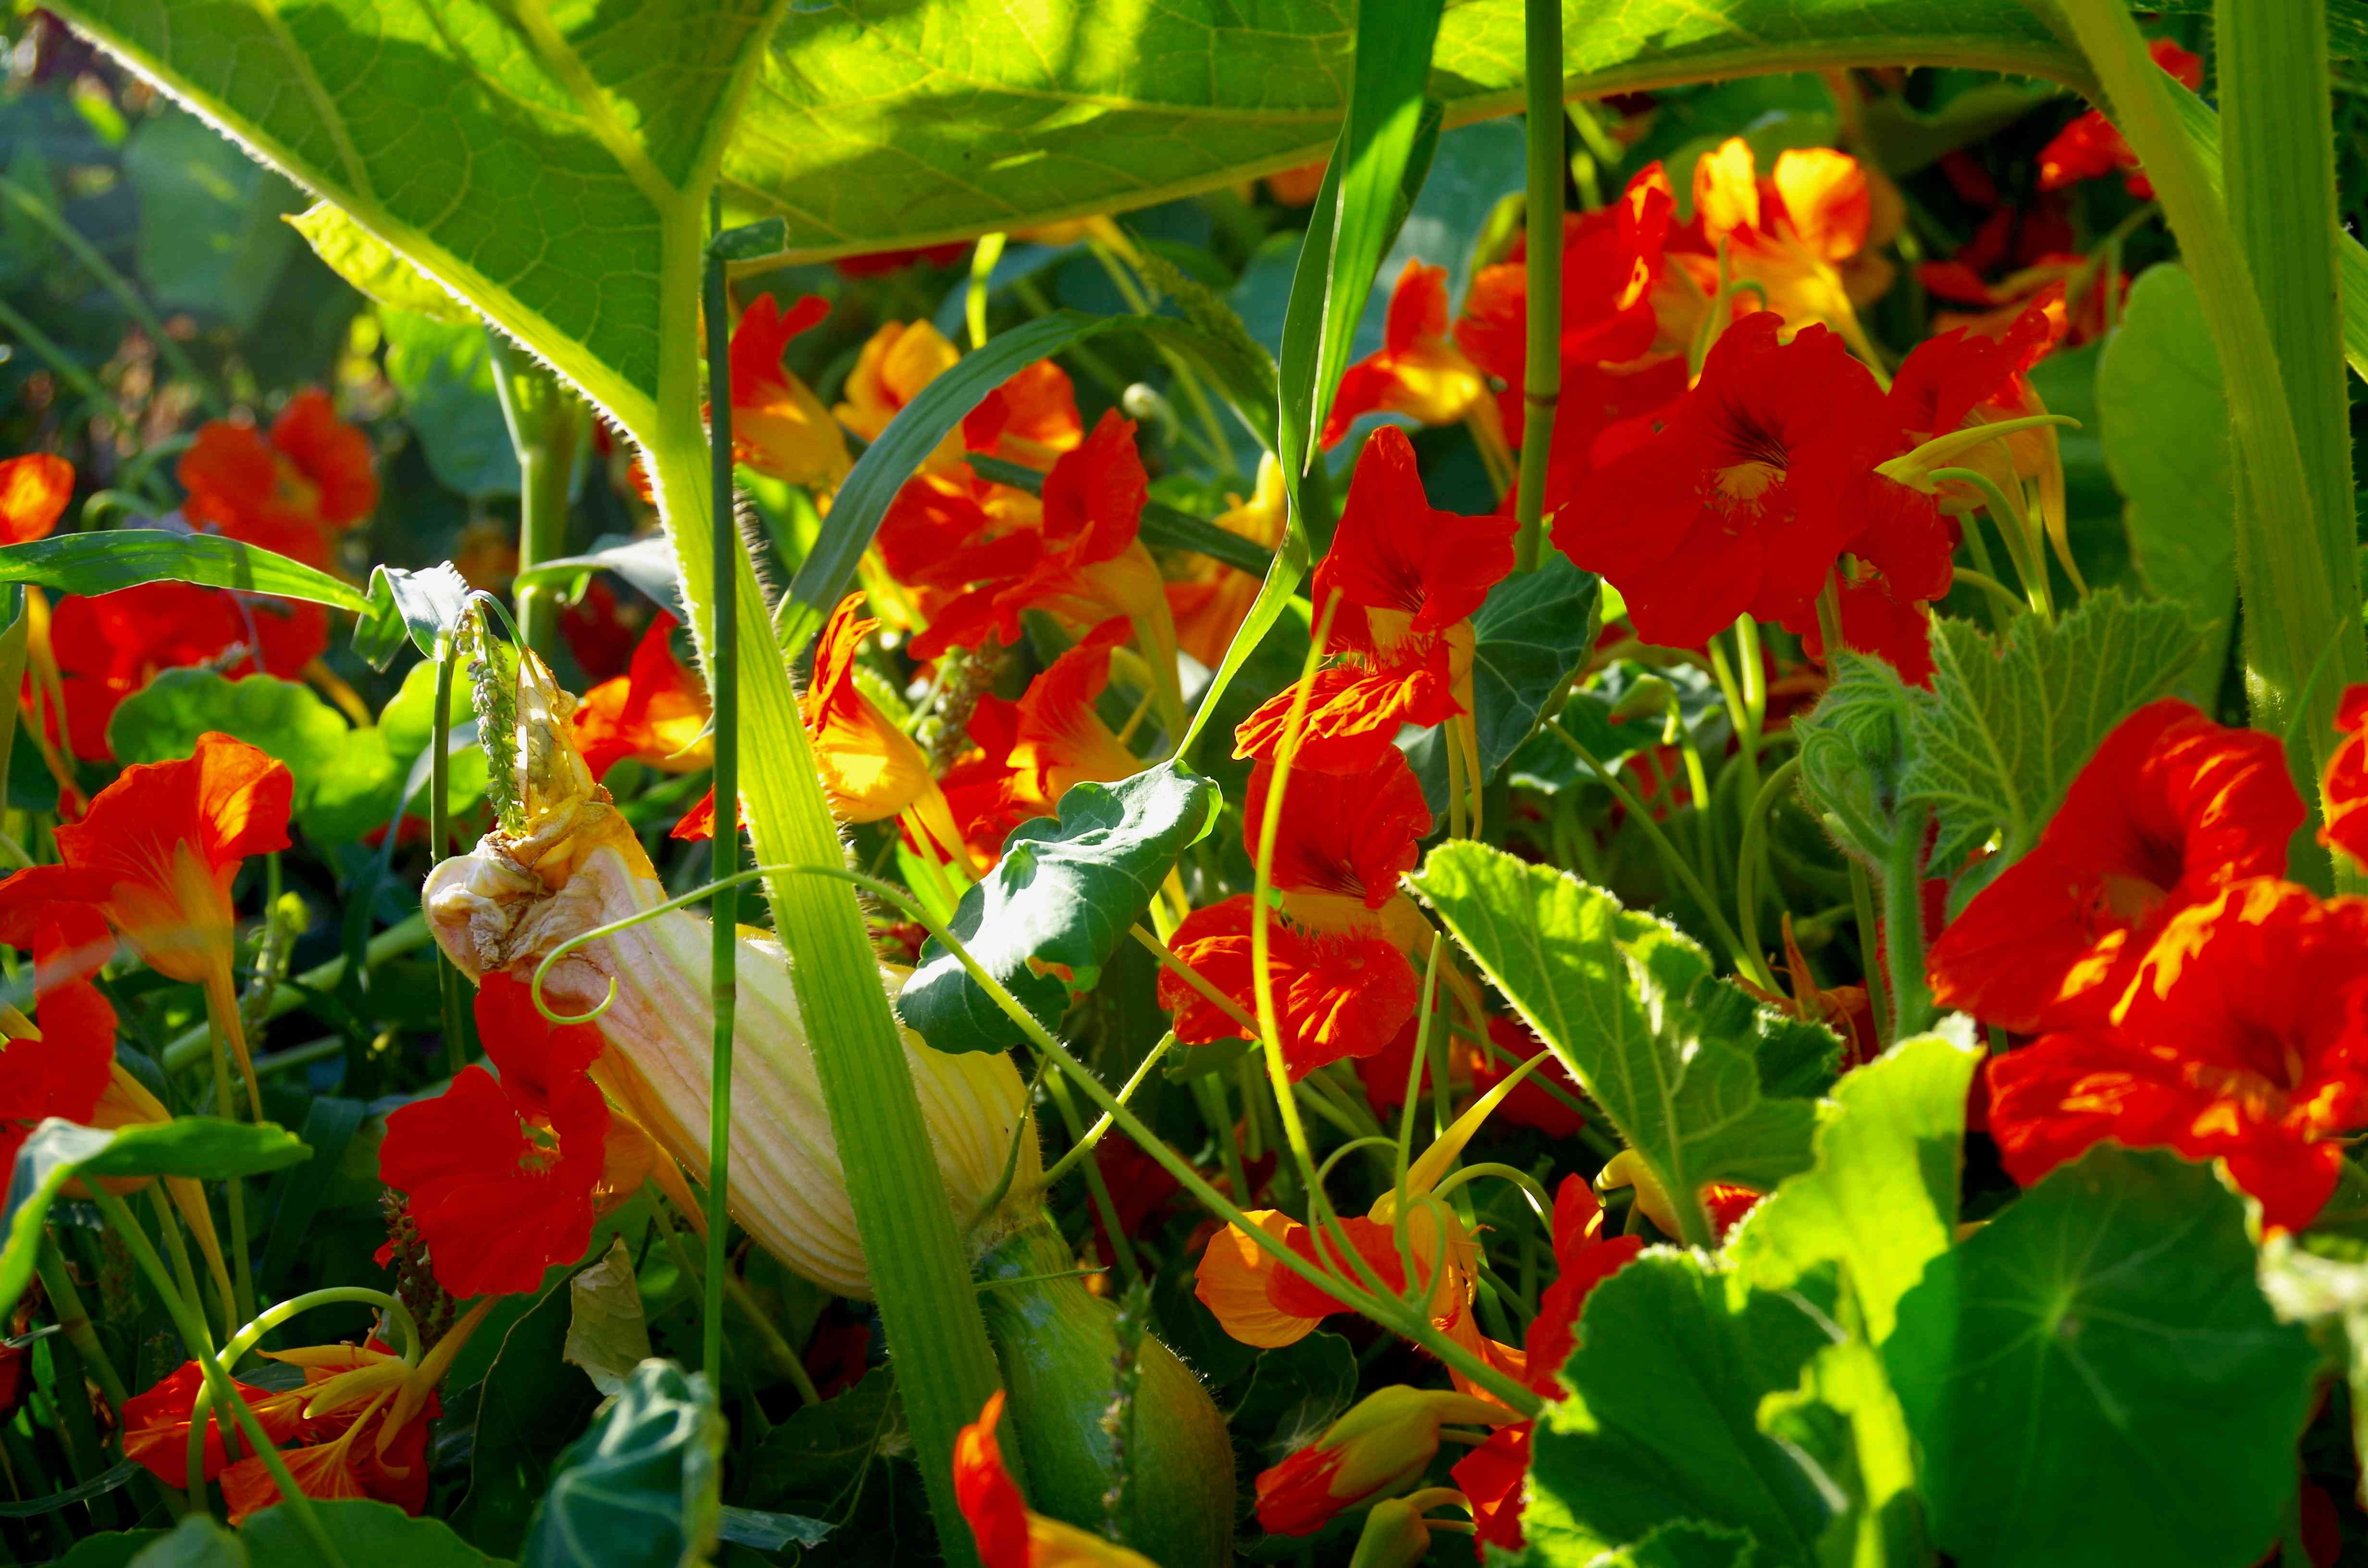 squash and nasturium planted together in a garden